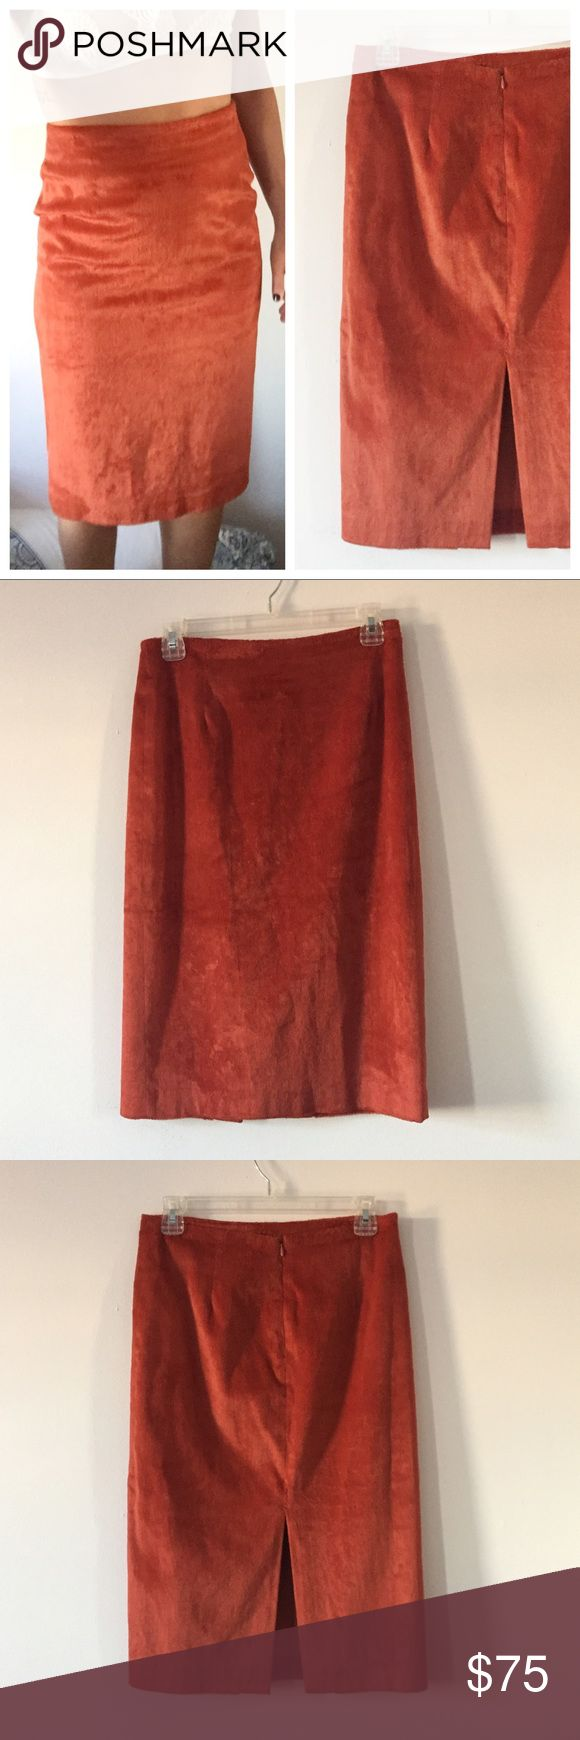 """Vintage • Burnt Orange High Waist Pencil Skirt This skirt is amazing and one of a kind. Vintage, tag was cut out so I don't know the brand. Size 6 but this is vintage sizing, so it runs smaller, please refer to measurements. Length is 26"""", waist is 14"""". Hips roughly 18"""" but changes with body type. I am a 26 waist and this fits me perfectly. Comes below the knees a fuzzy/faux suede feel! Some strings inside due to the age. Slit in back. Love this but have no use for it, will be extremely sad…"""